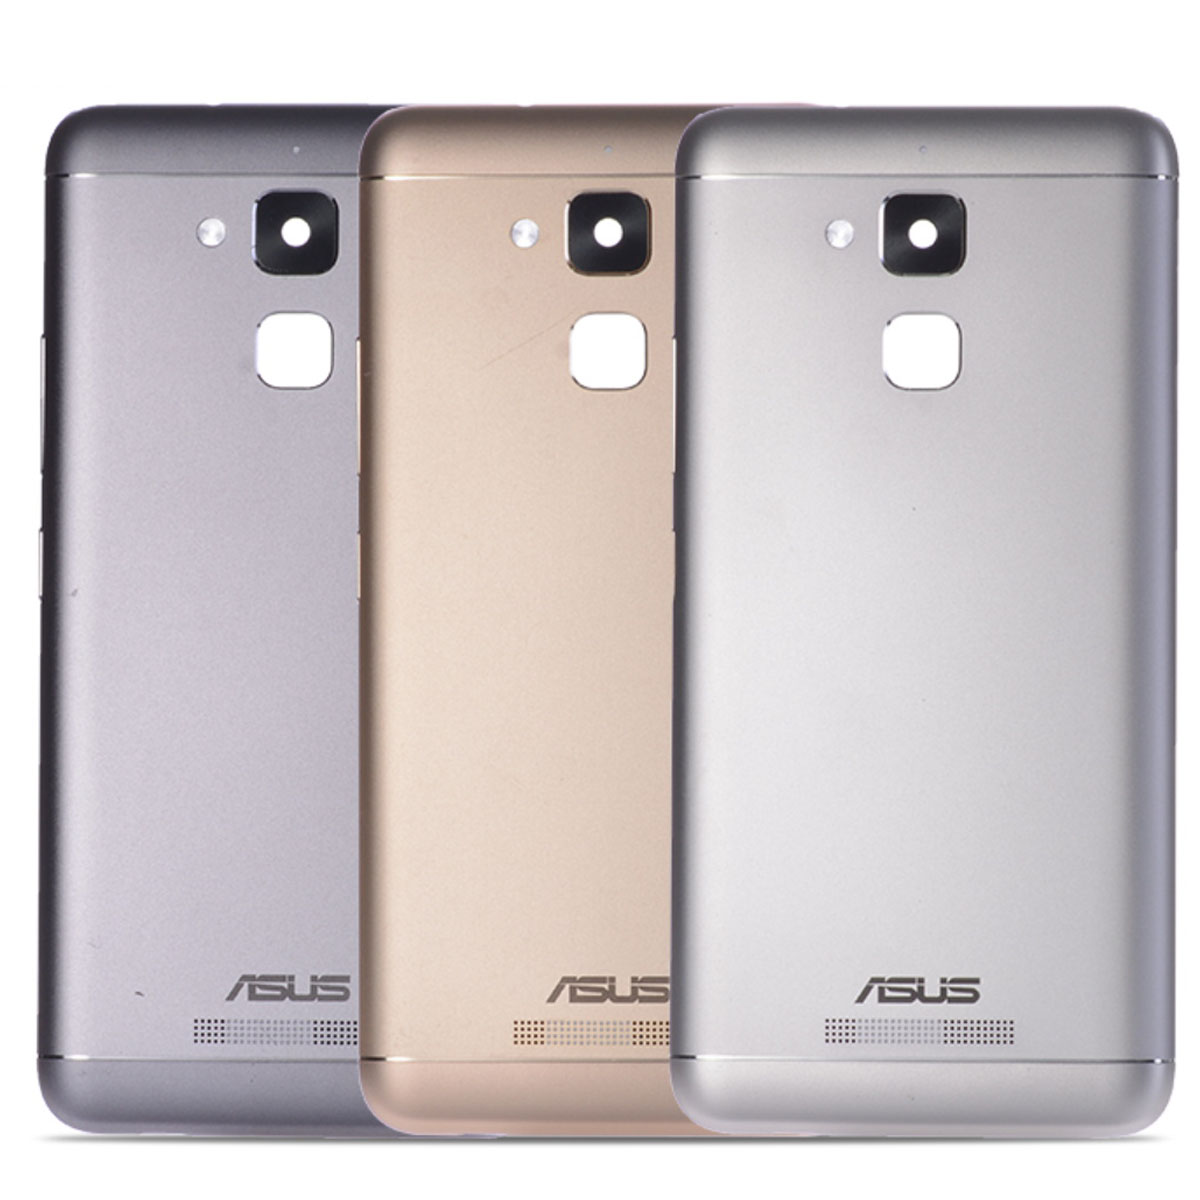 asus zenfone 3 back cover - Original Rear Back Housing for ASUS Zenfone 3 Max ZC520TL Back Cover Battery Door with Power Volume Buttons Camera Lens Replace